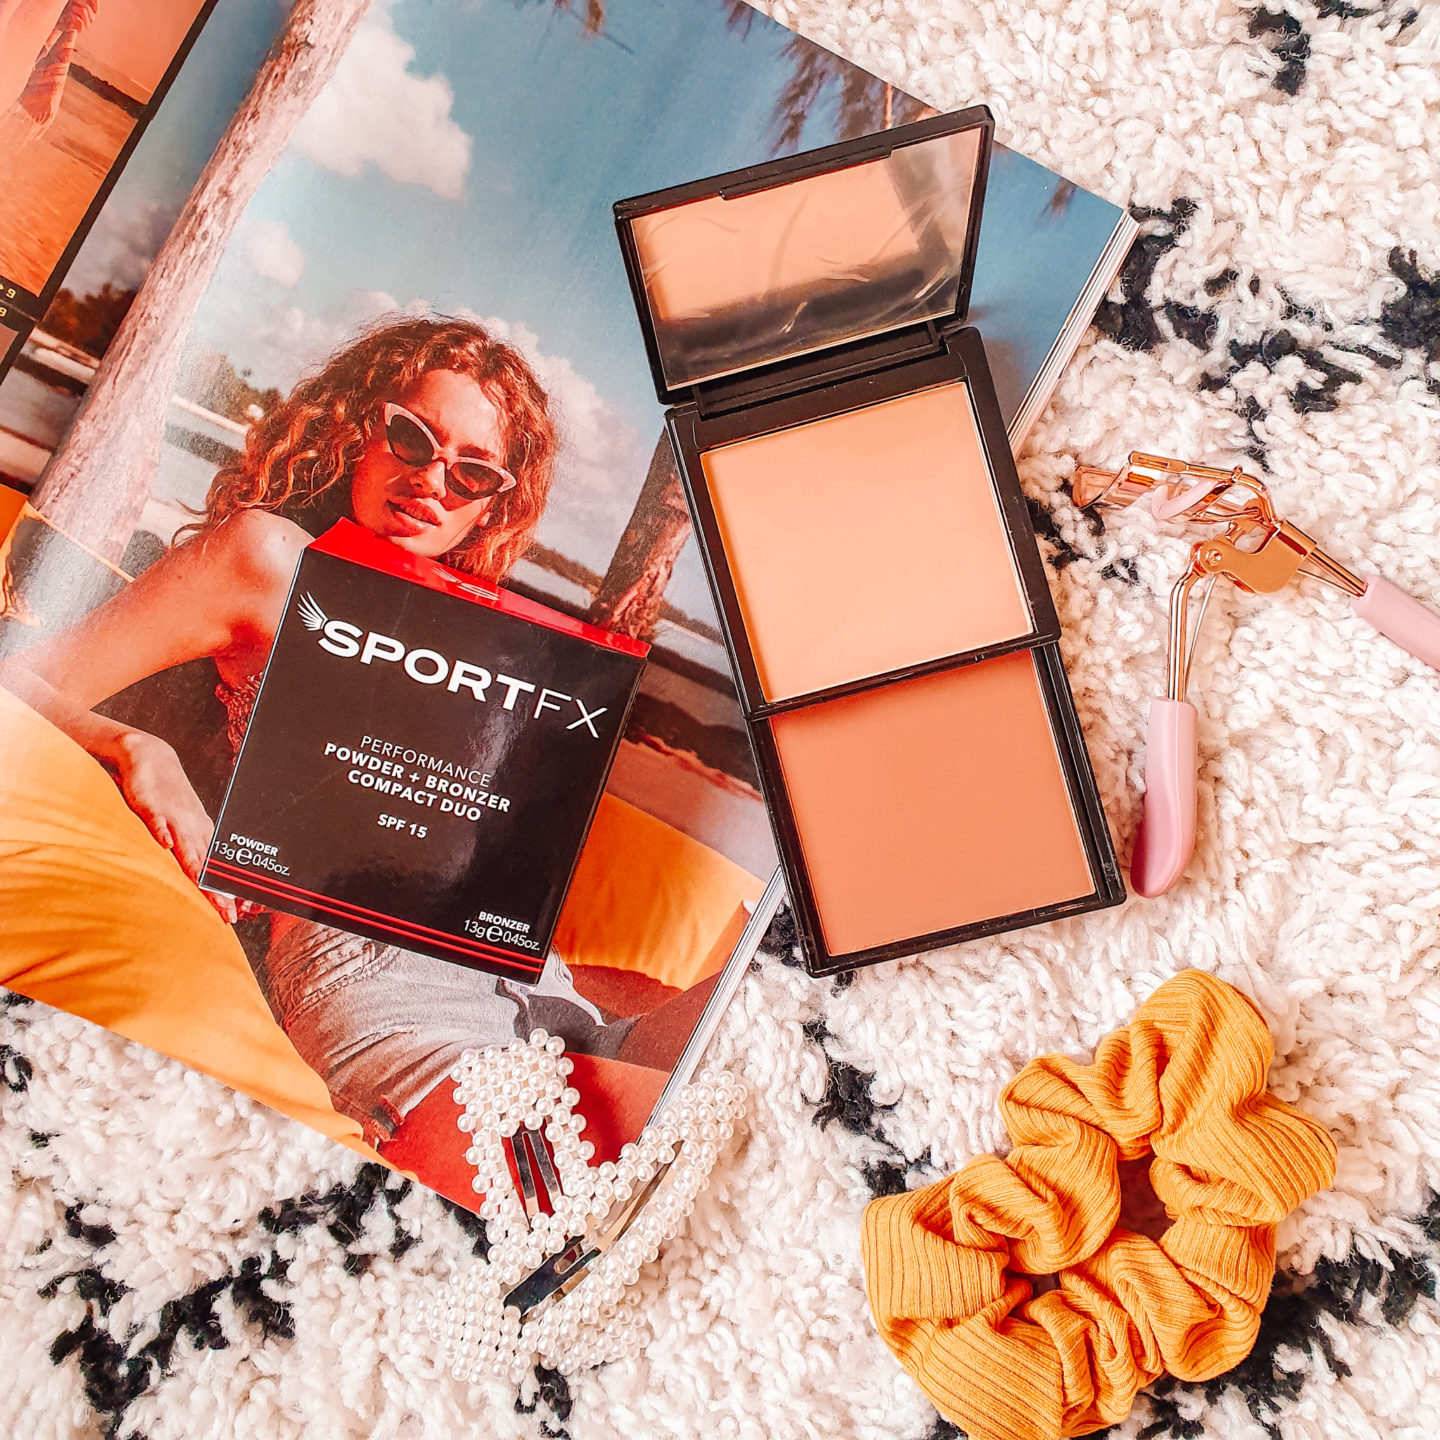 SportFX Performance Powder and Bronzer Compact Duo Light